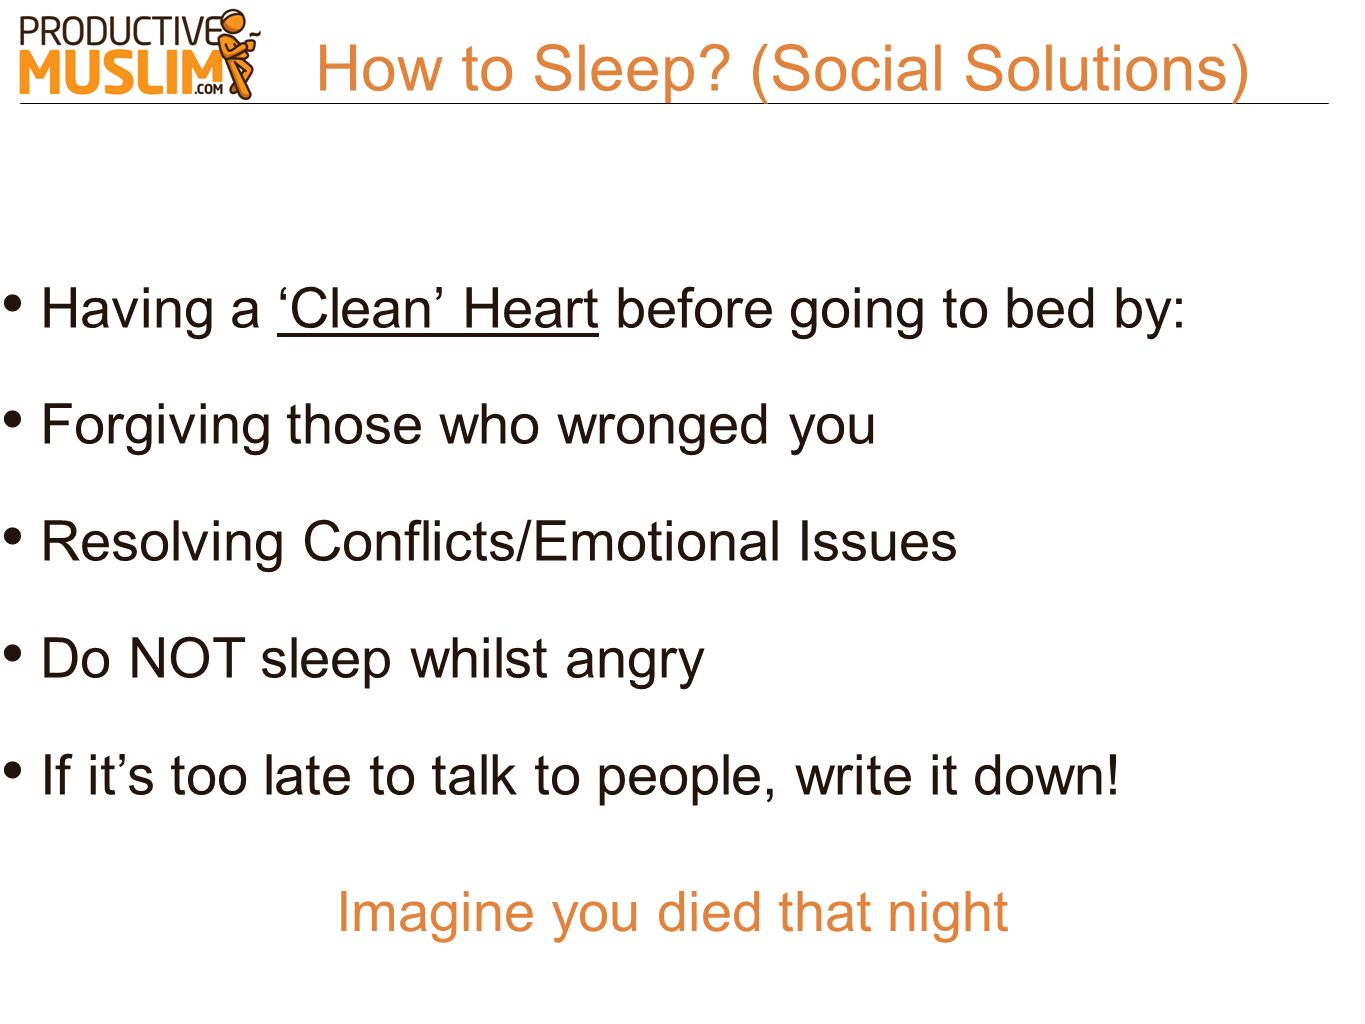 How to Sleep (Social Solutions)